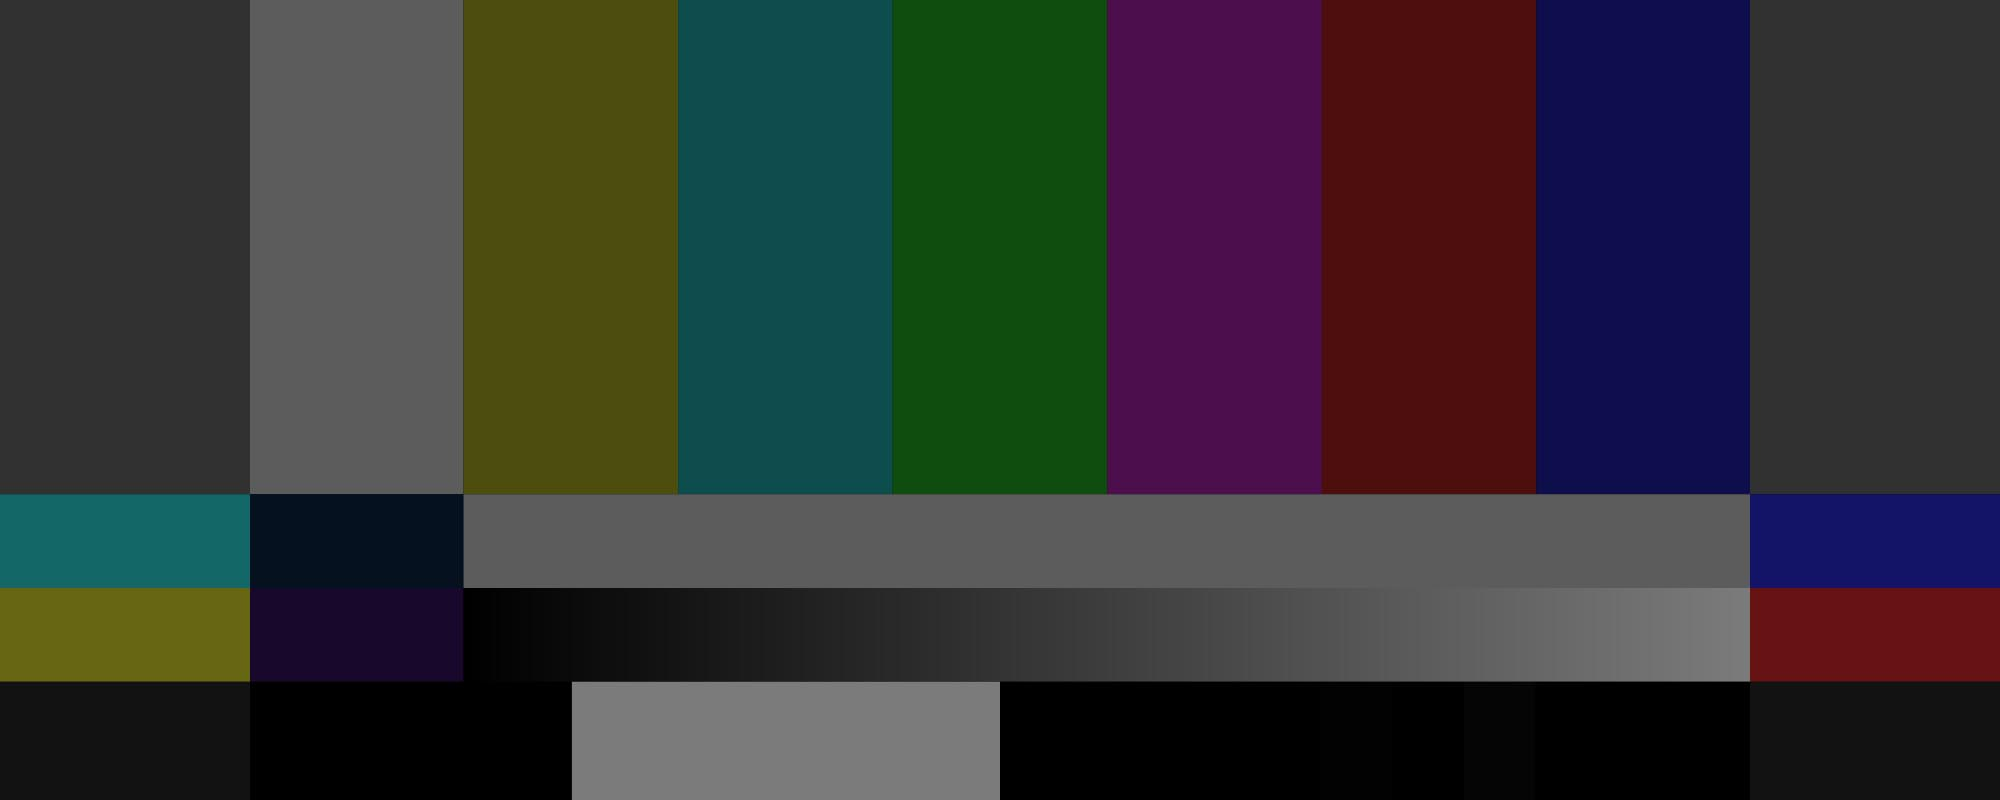 NTSC Color Bars